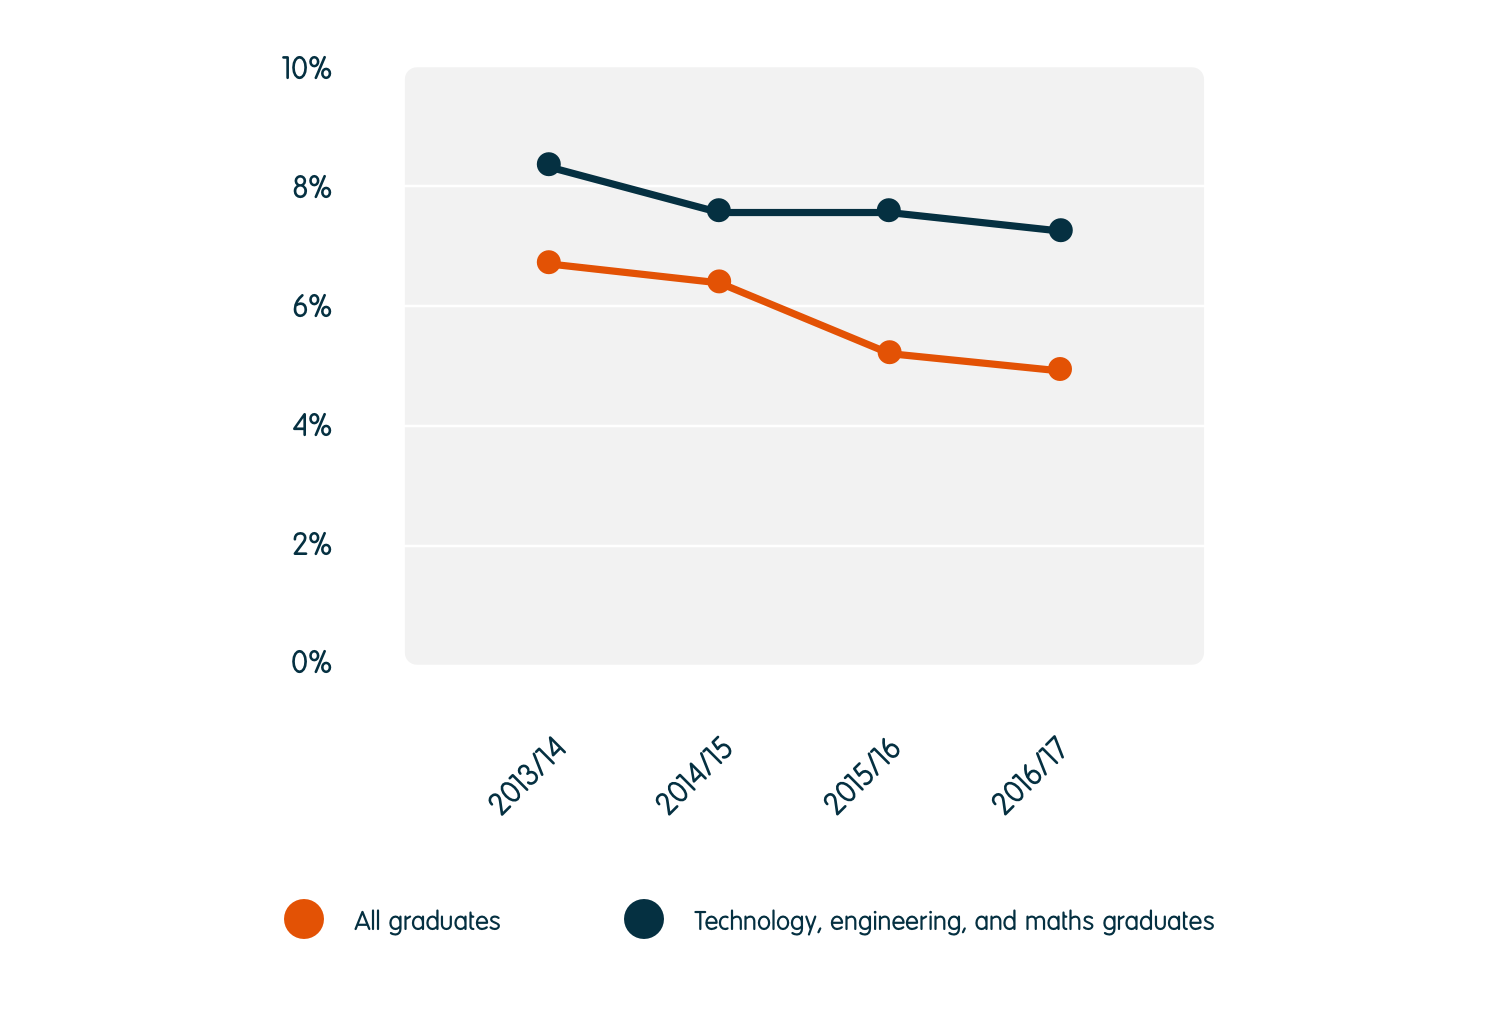 The unemployment rate for technology, engineering, and maths graduates reduced from 8.3% in 2013/14 to 7.4% in 2016/17. This is higher than the 5.1% unemployment rate for all graduates.